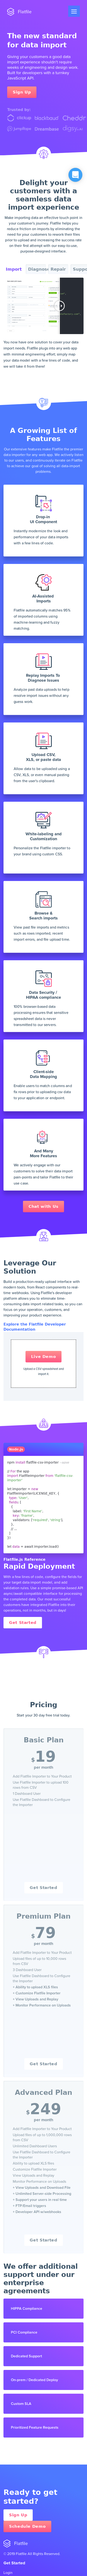 Example of Design for Business & Industrial, Mobile Landing Page by flatfile.io | Mobile Landing Page Design